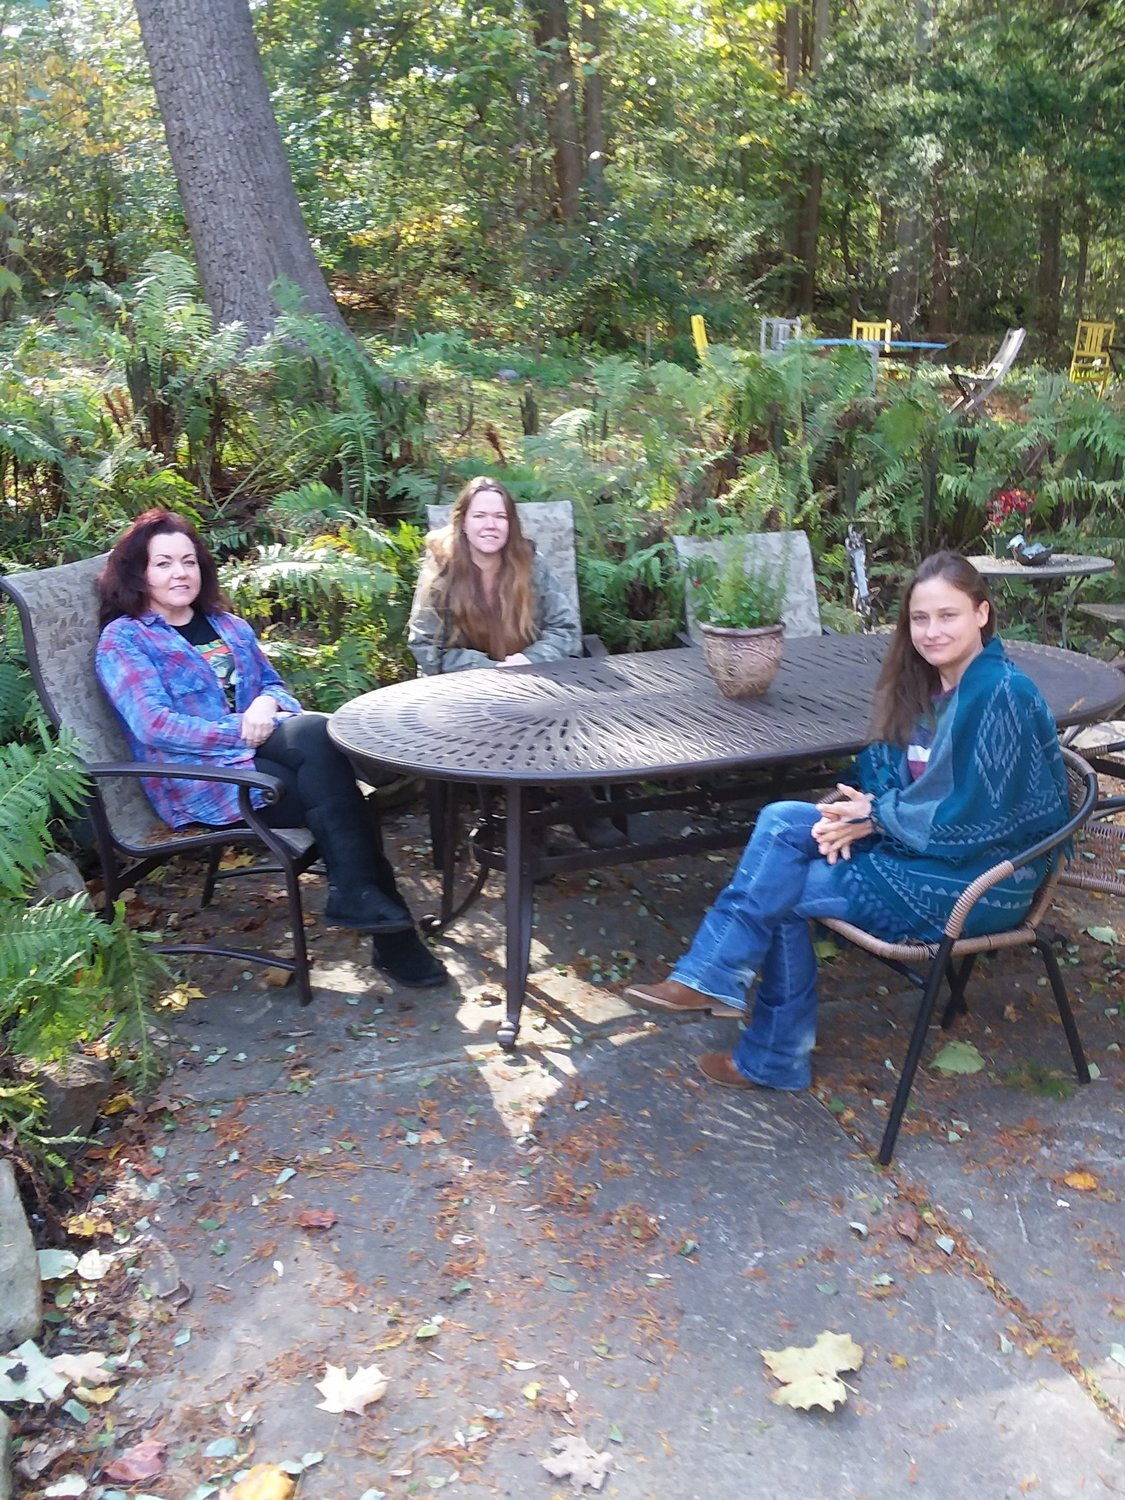 Mary Skarbek (from left), Morgan Wells and Jen Merritt enjoy a lovely day in the park at Cedars House, a historic property at 200 W. Northwestern Ave. on Forbidden Drive. (Photo by Stacia Friedman)